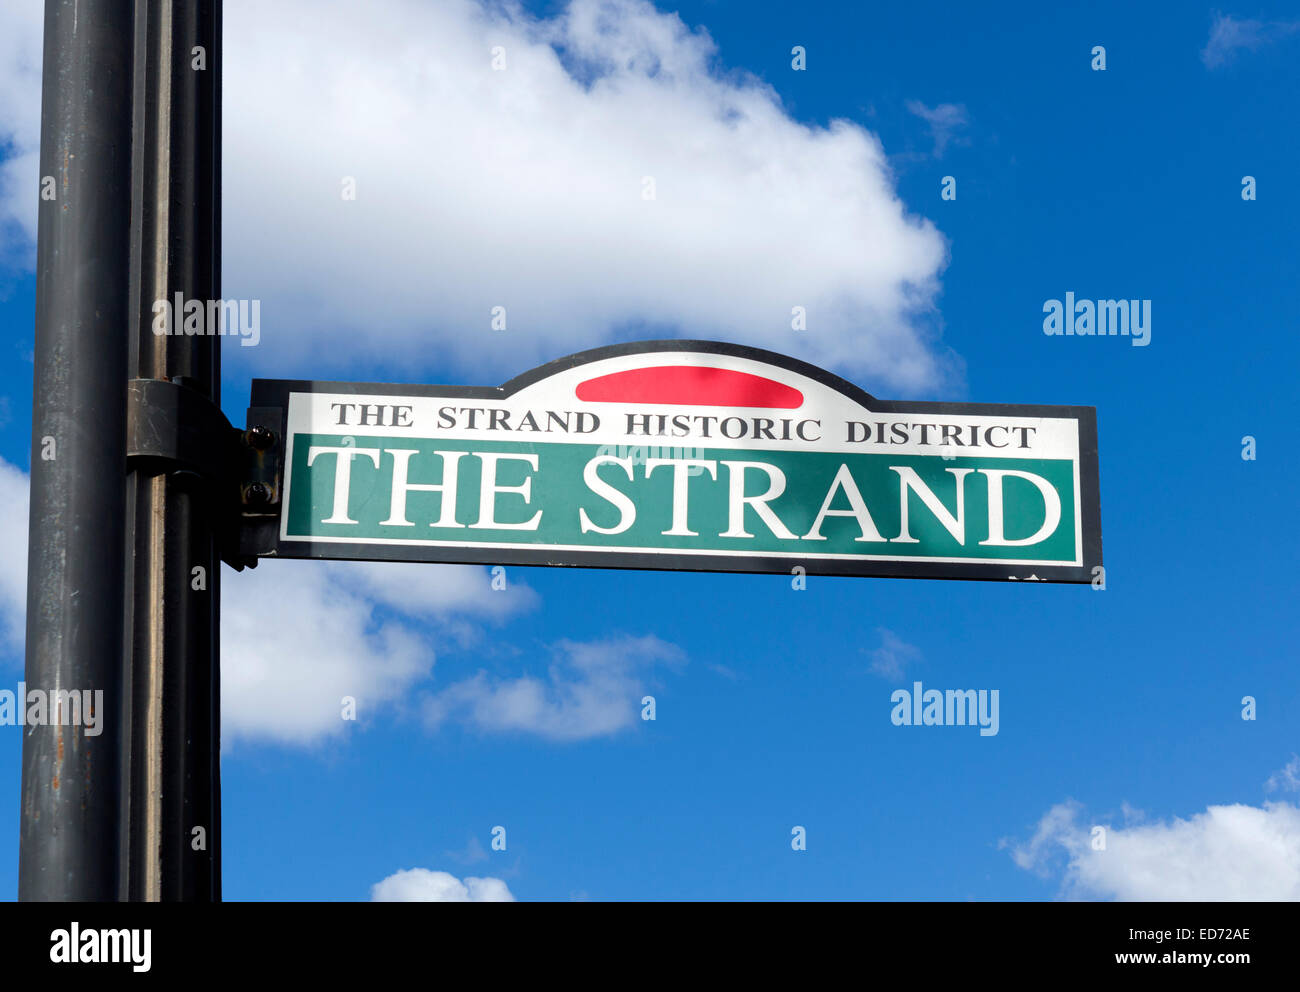 The Strand in historic old downtown Galveston, Texas, USA - Stock Image